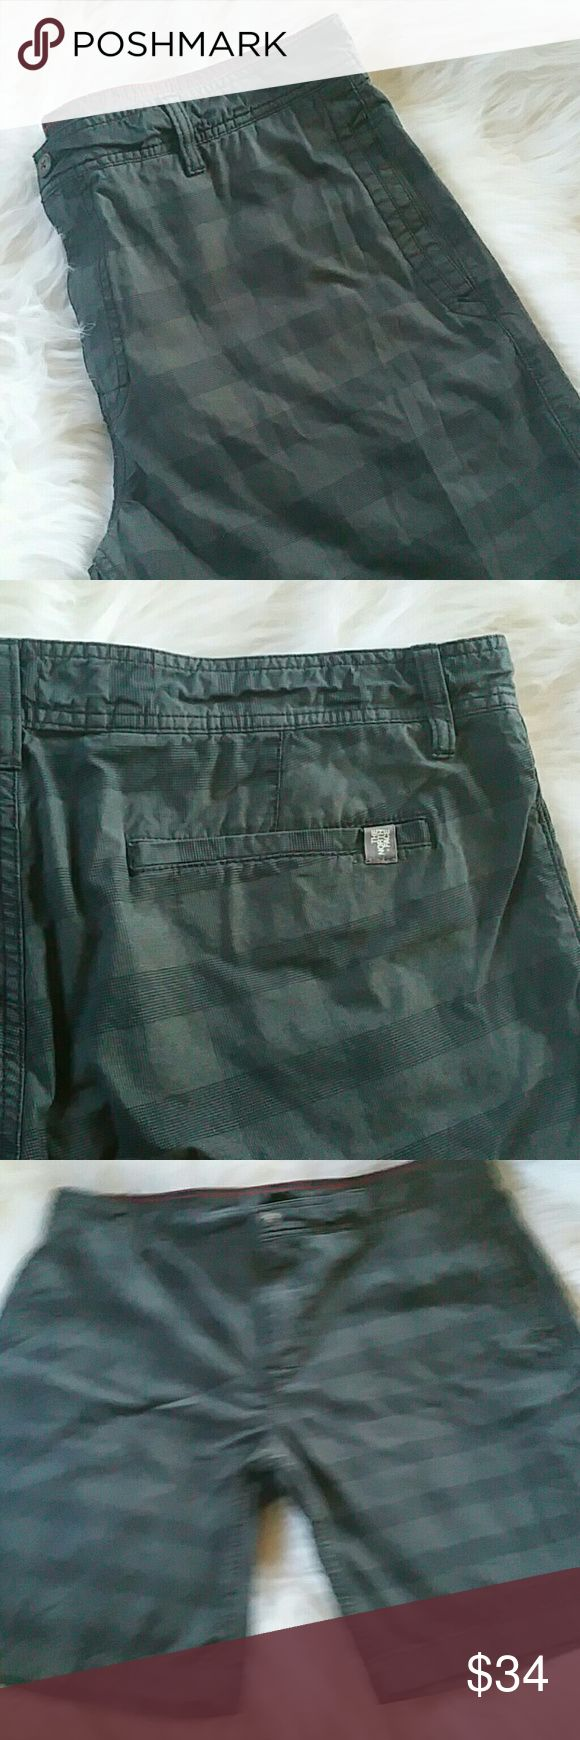 THE NORTH FACE - MEN'S LONG SHORTS Bnwot  Size is 40 Black n gray checkered  Never worn The North Face Shorts